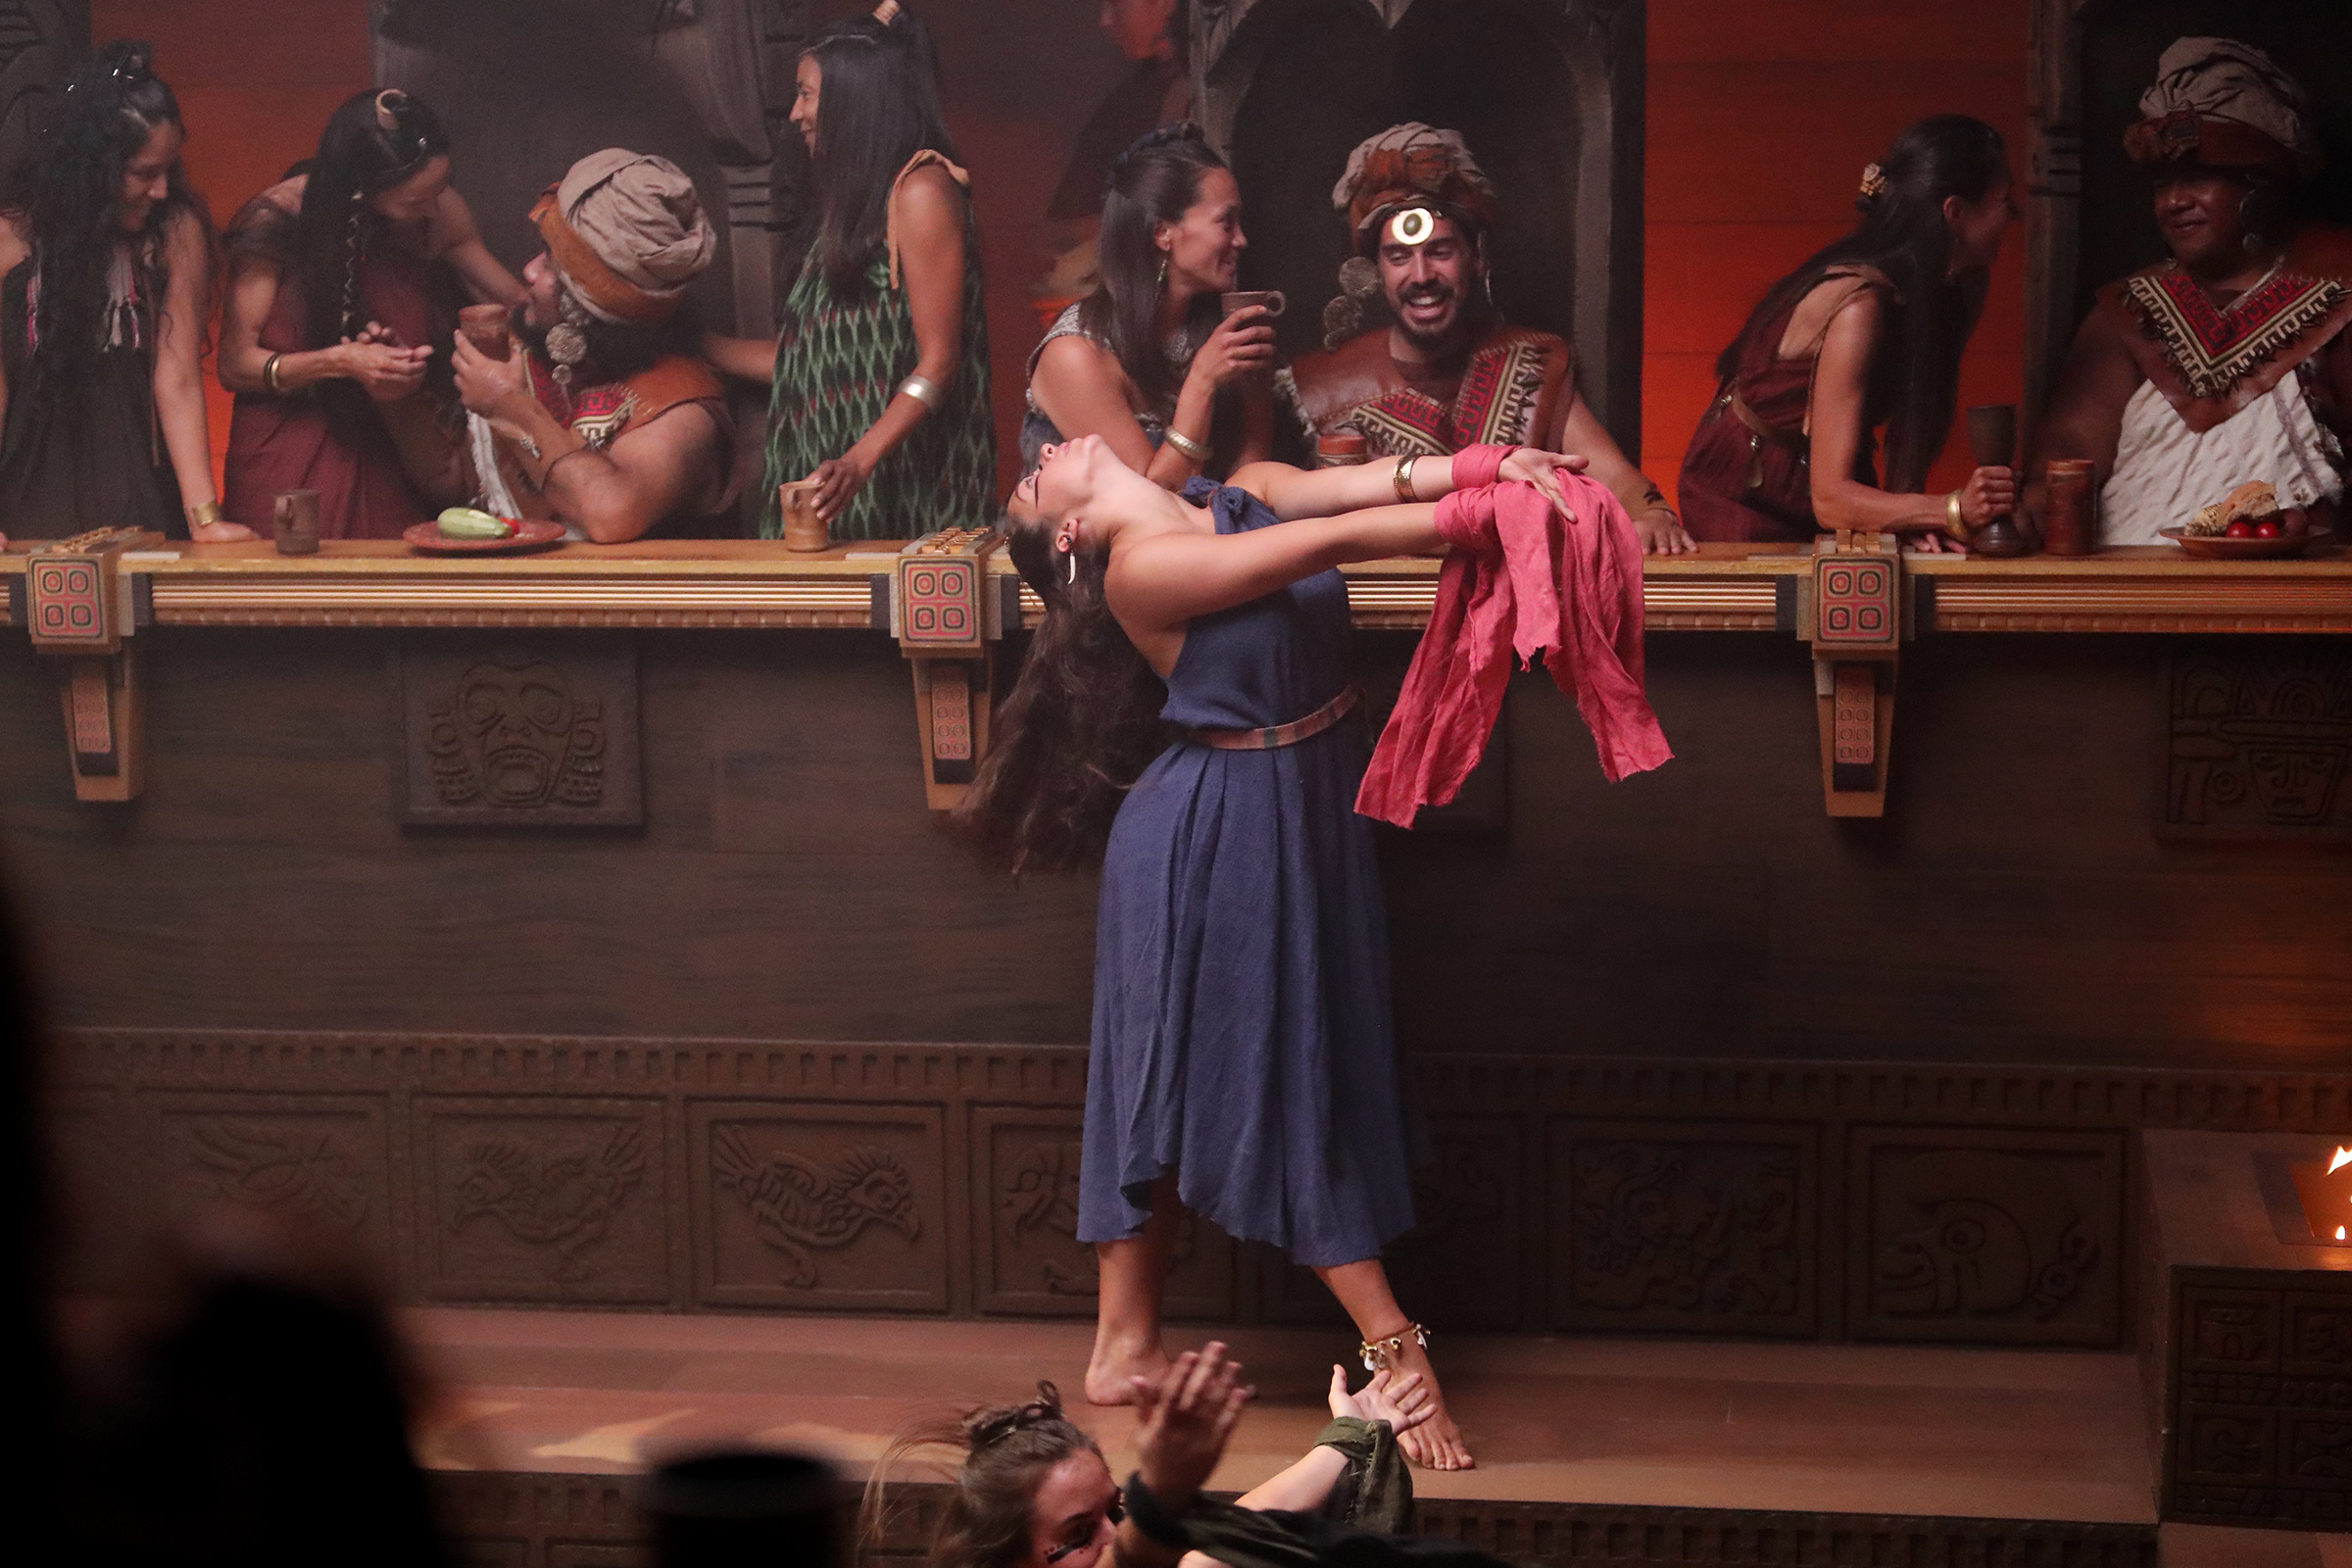 A cast member dances in King Noah's court as work on production of the Book of Mormon video series continues in Provo, Utah, at the Motion Picture Studio on Tuesday, Sept. 3, 2019.